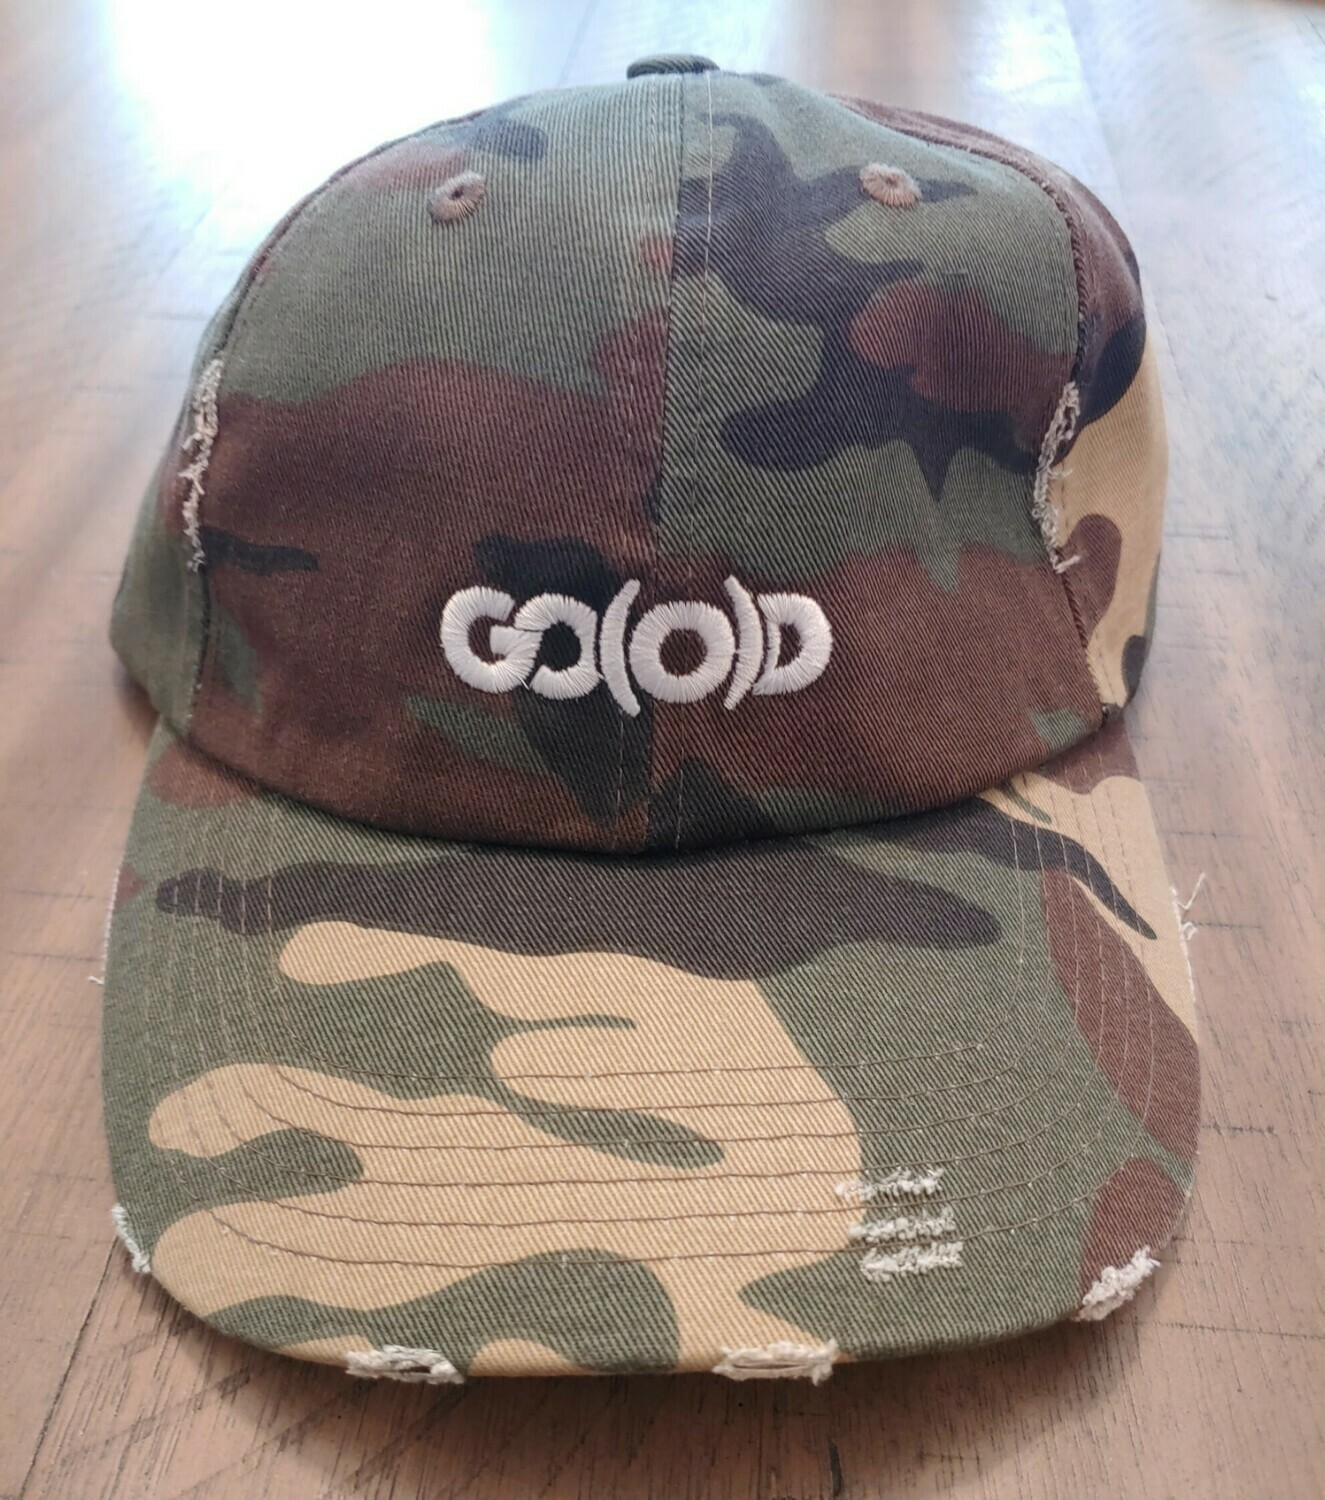 GO(O)D Distressed Dad Hat-camo/white